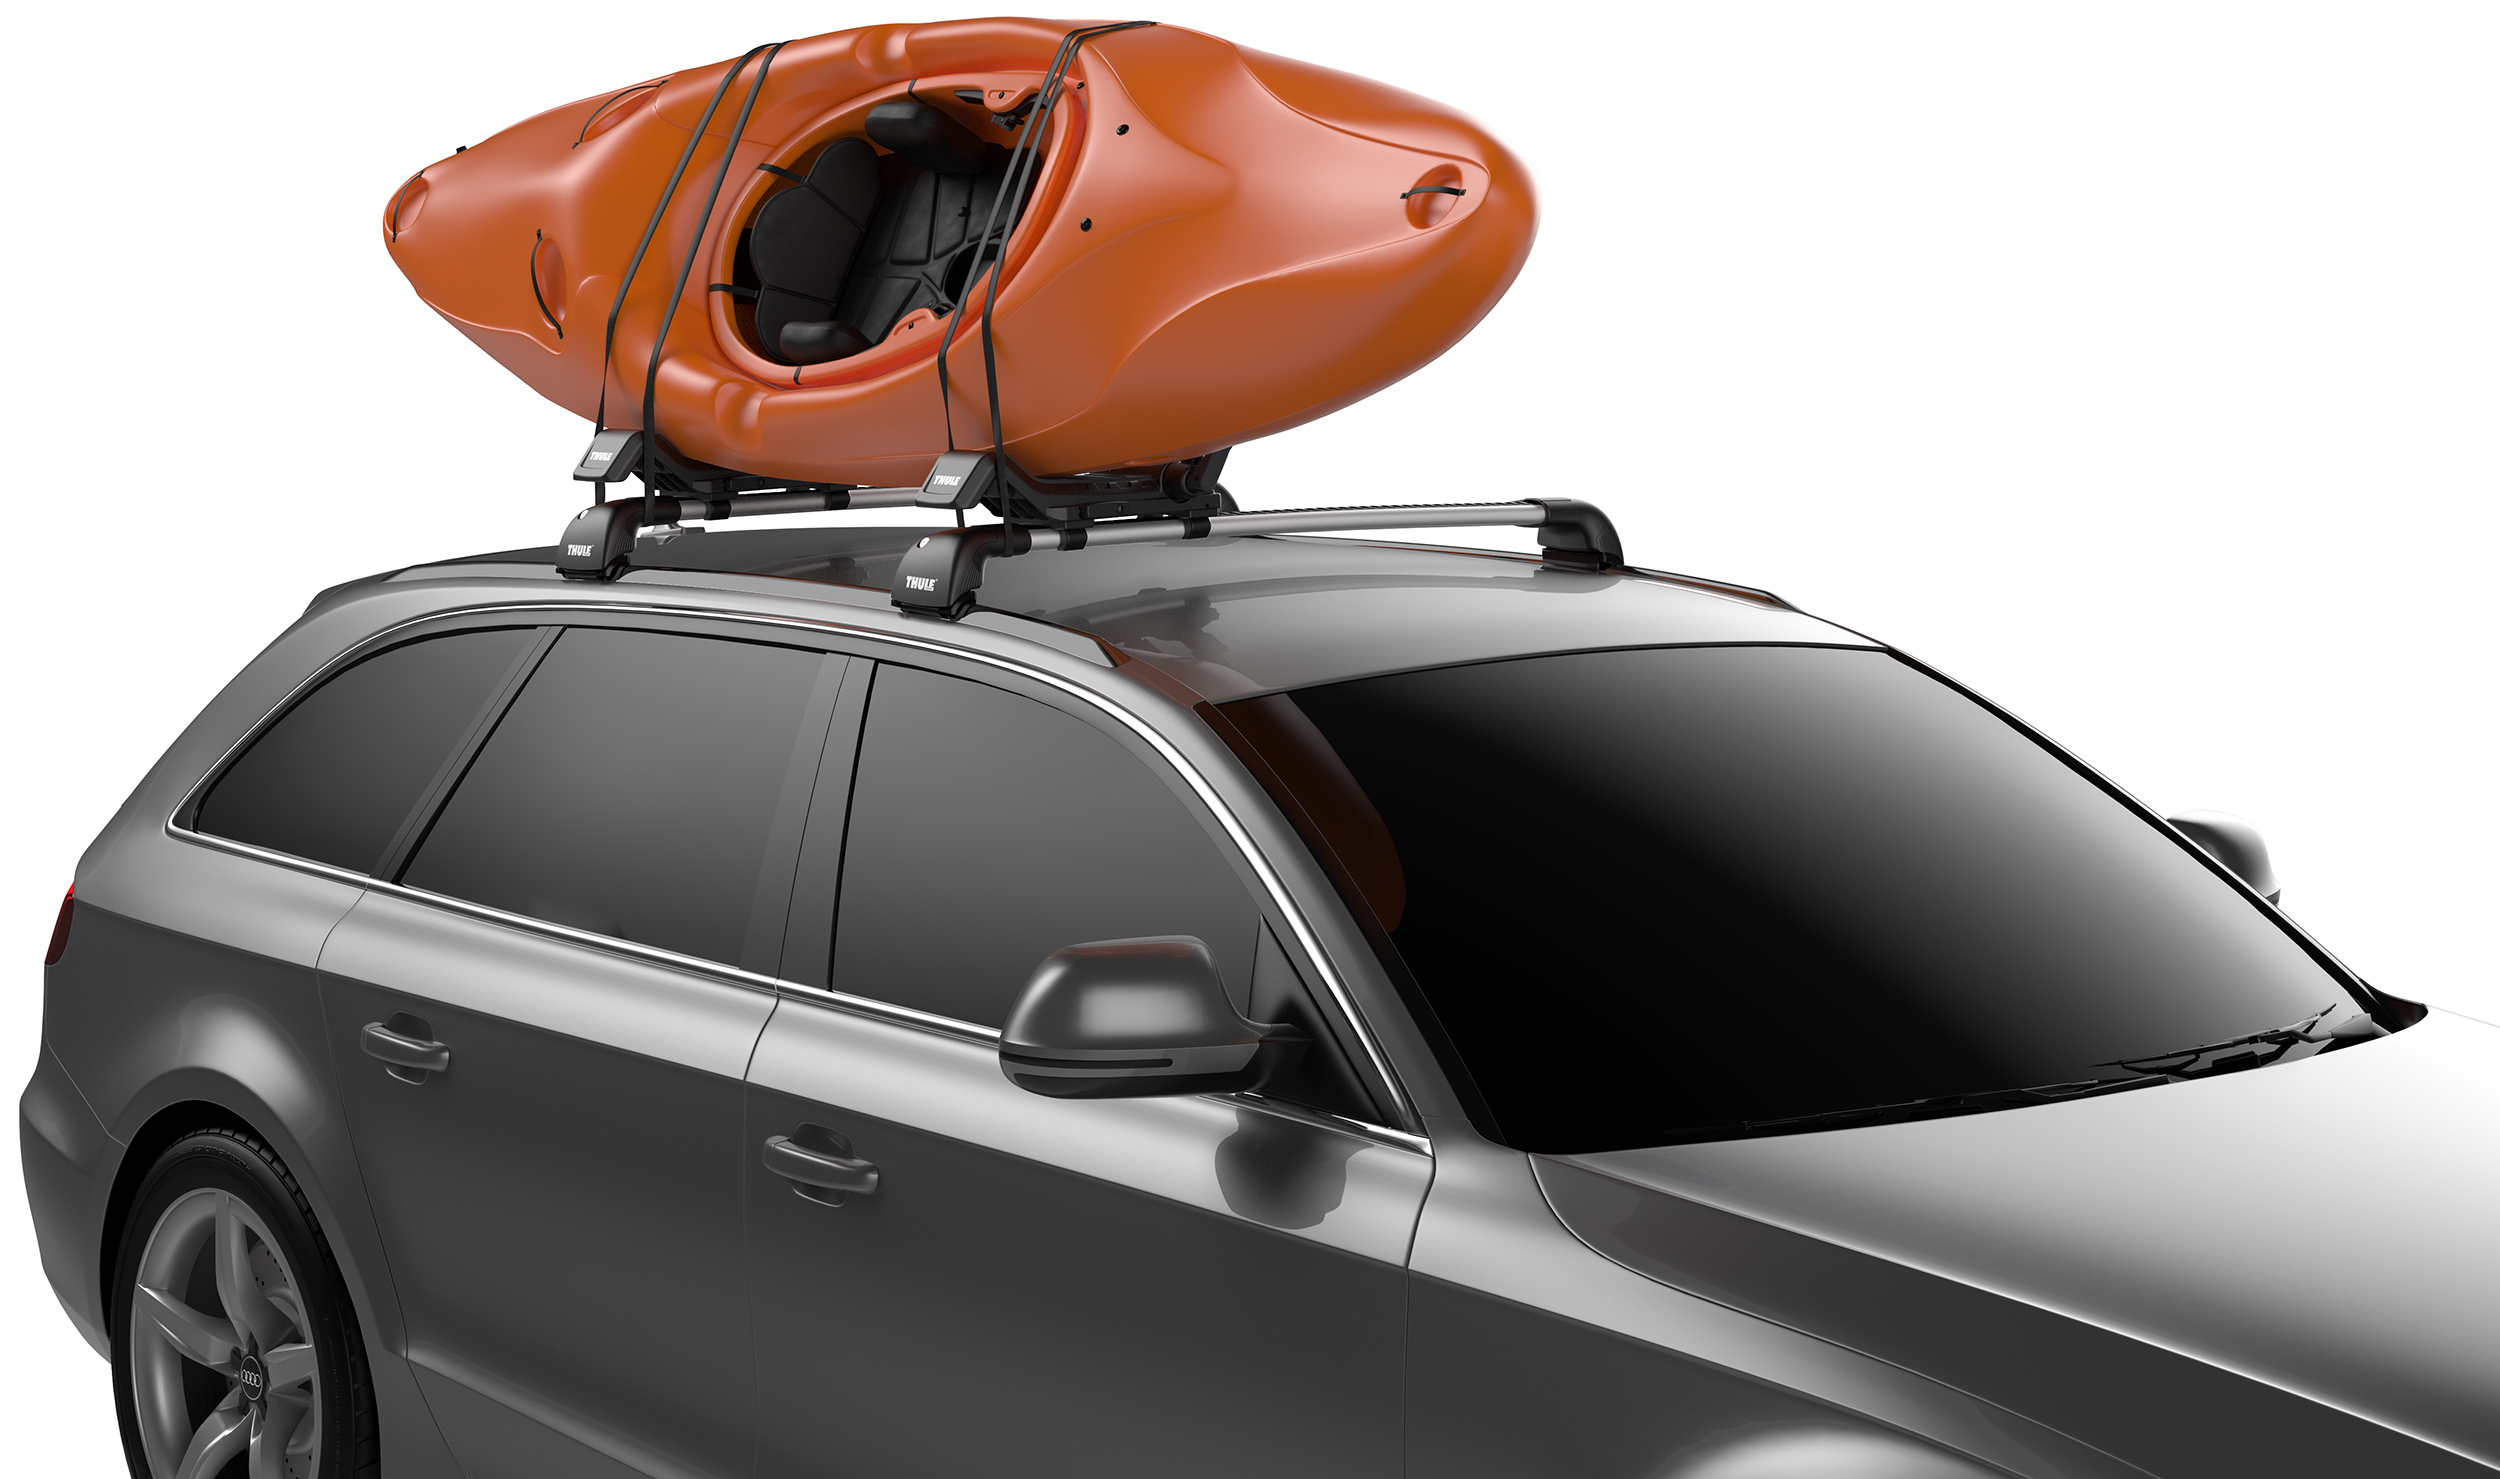 up a car rack paddle paddleboard stand board deluxe kit product question ask boards this about